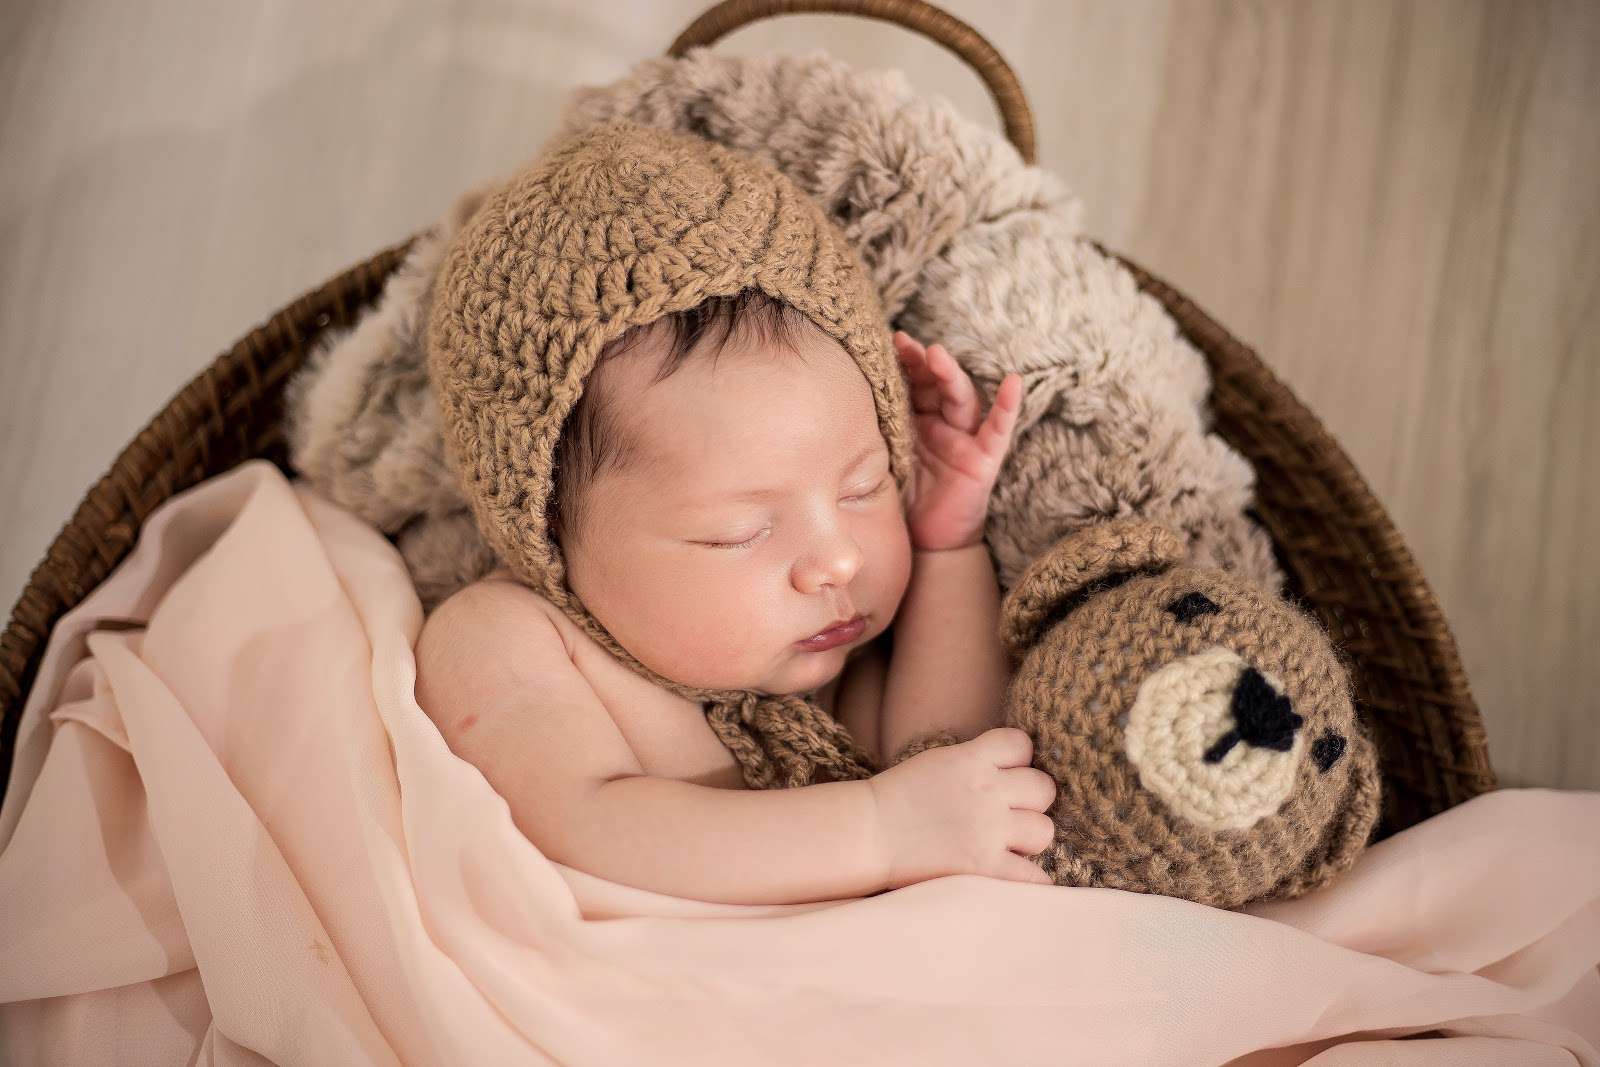 baby-wearing-brown-knit-cap-while-sleeping-pictures